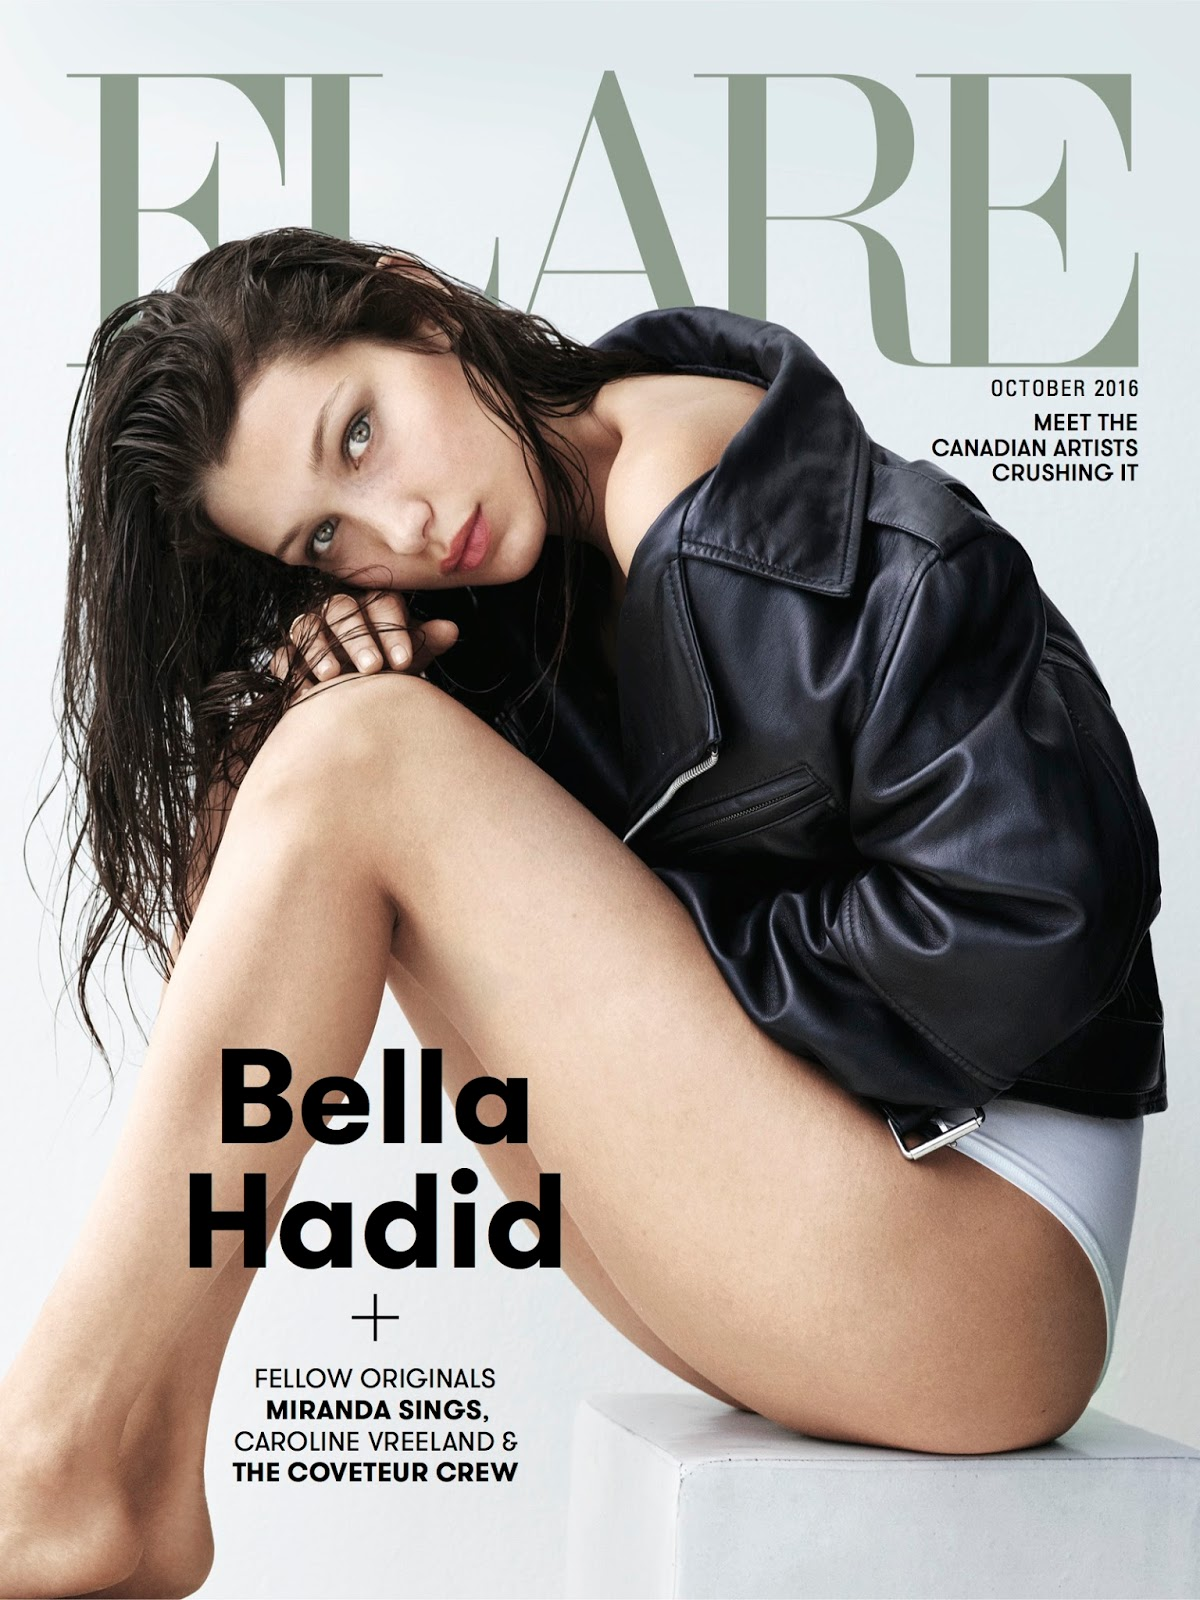 FLARE magazine October 2016 Bella Hadid